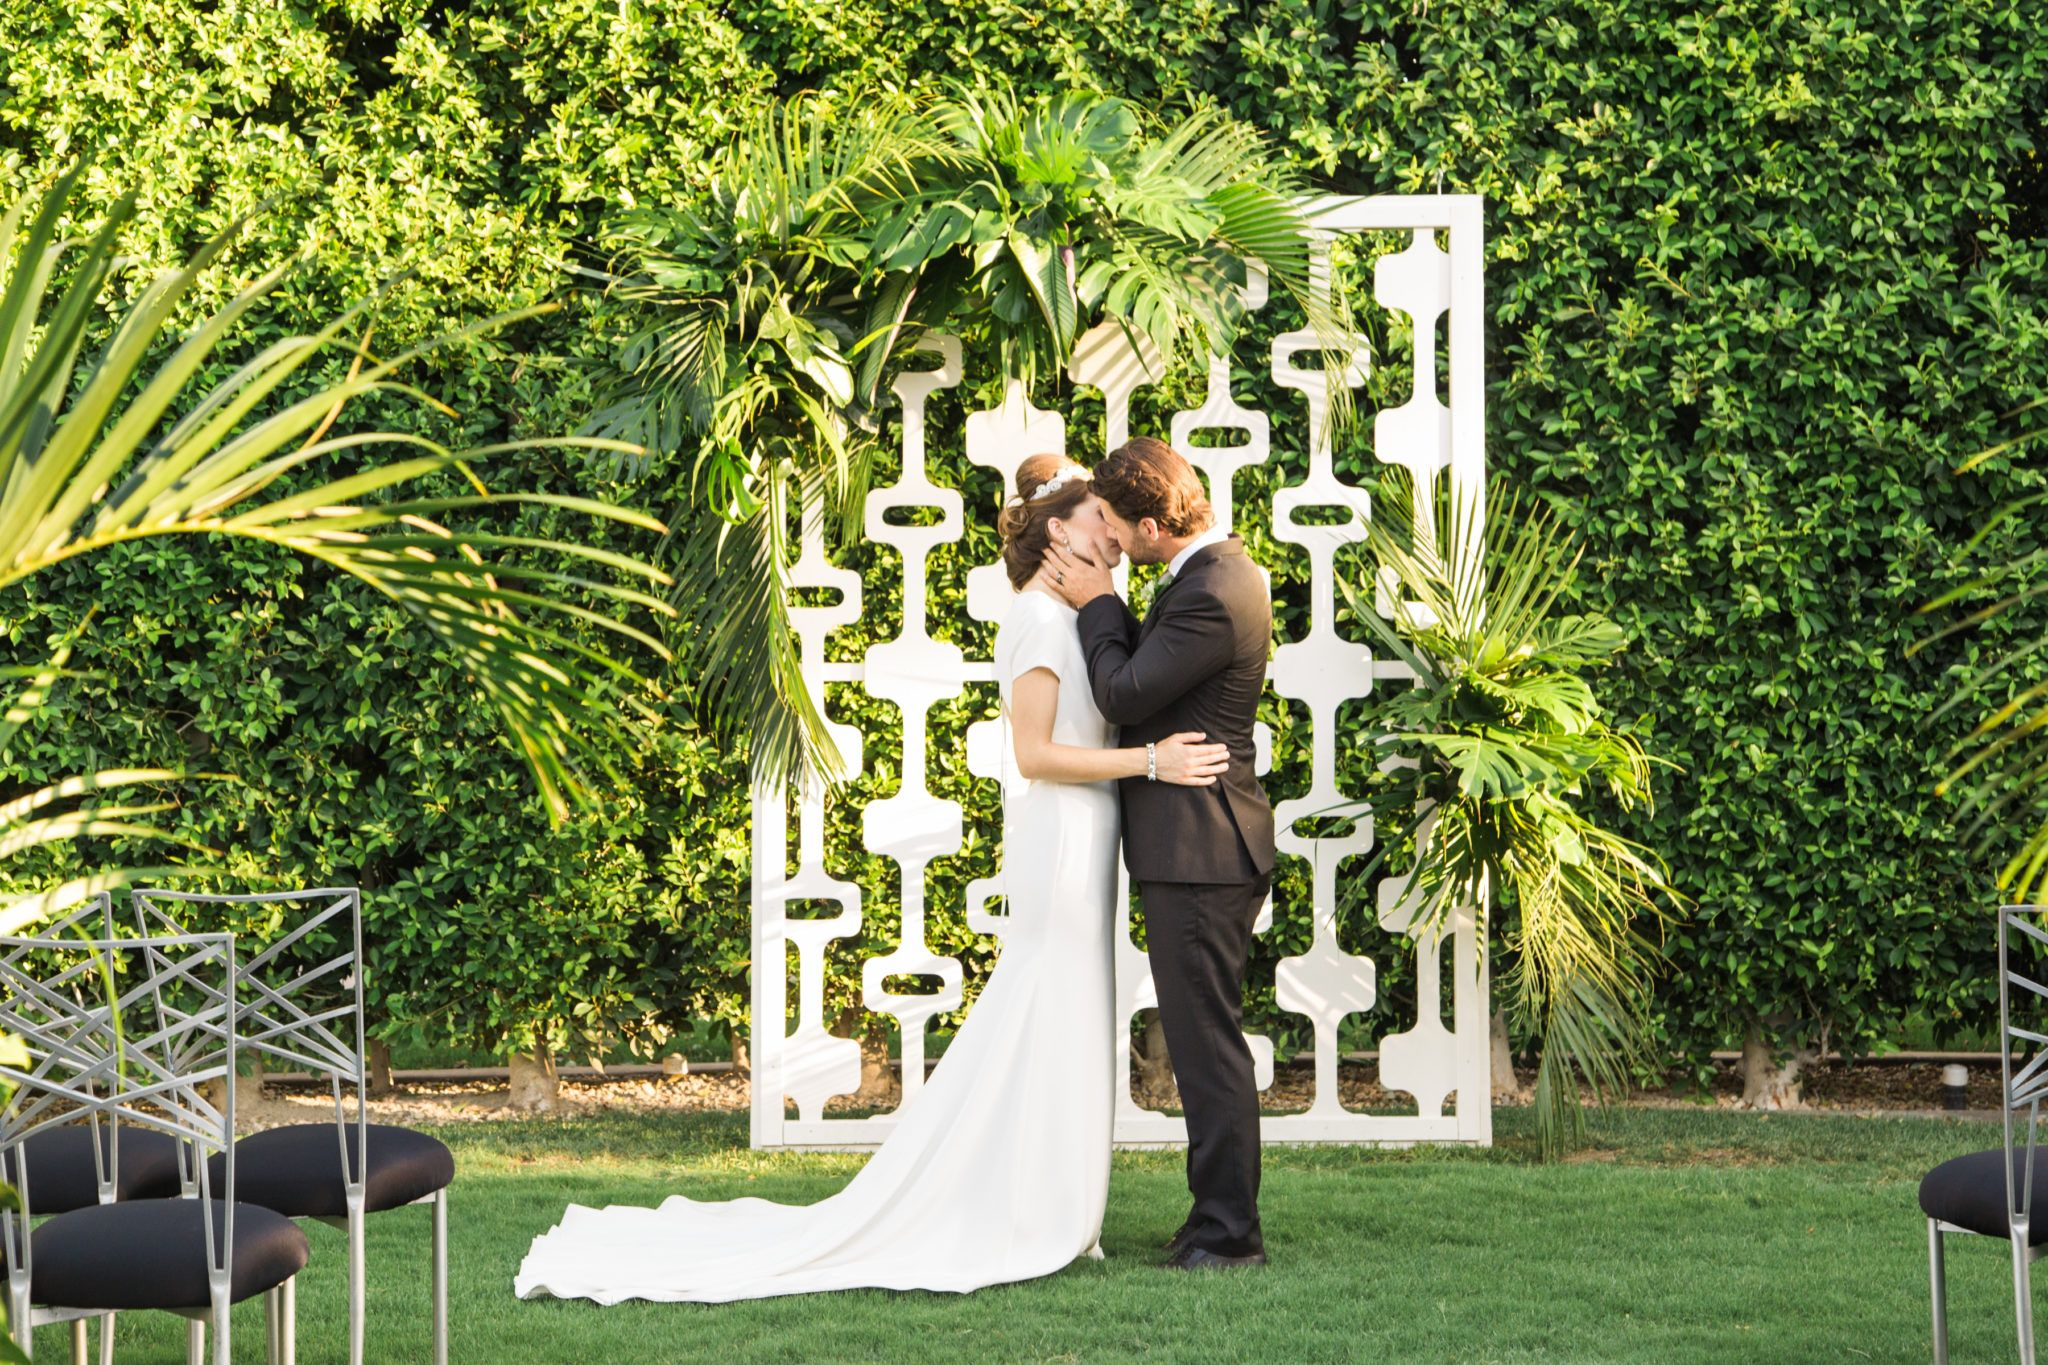 Go Together By Stunning Desert Wall Views The Palm Springs Wedding Chapel Is The Per Palm Springs Wedding Venues Romantic Wedding Venue